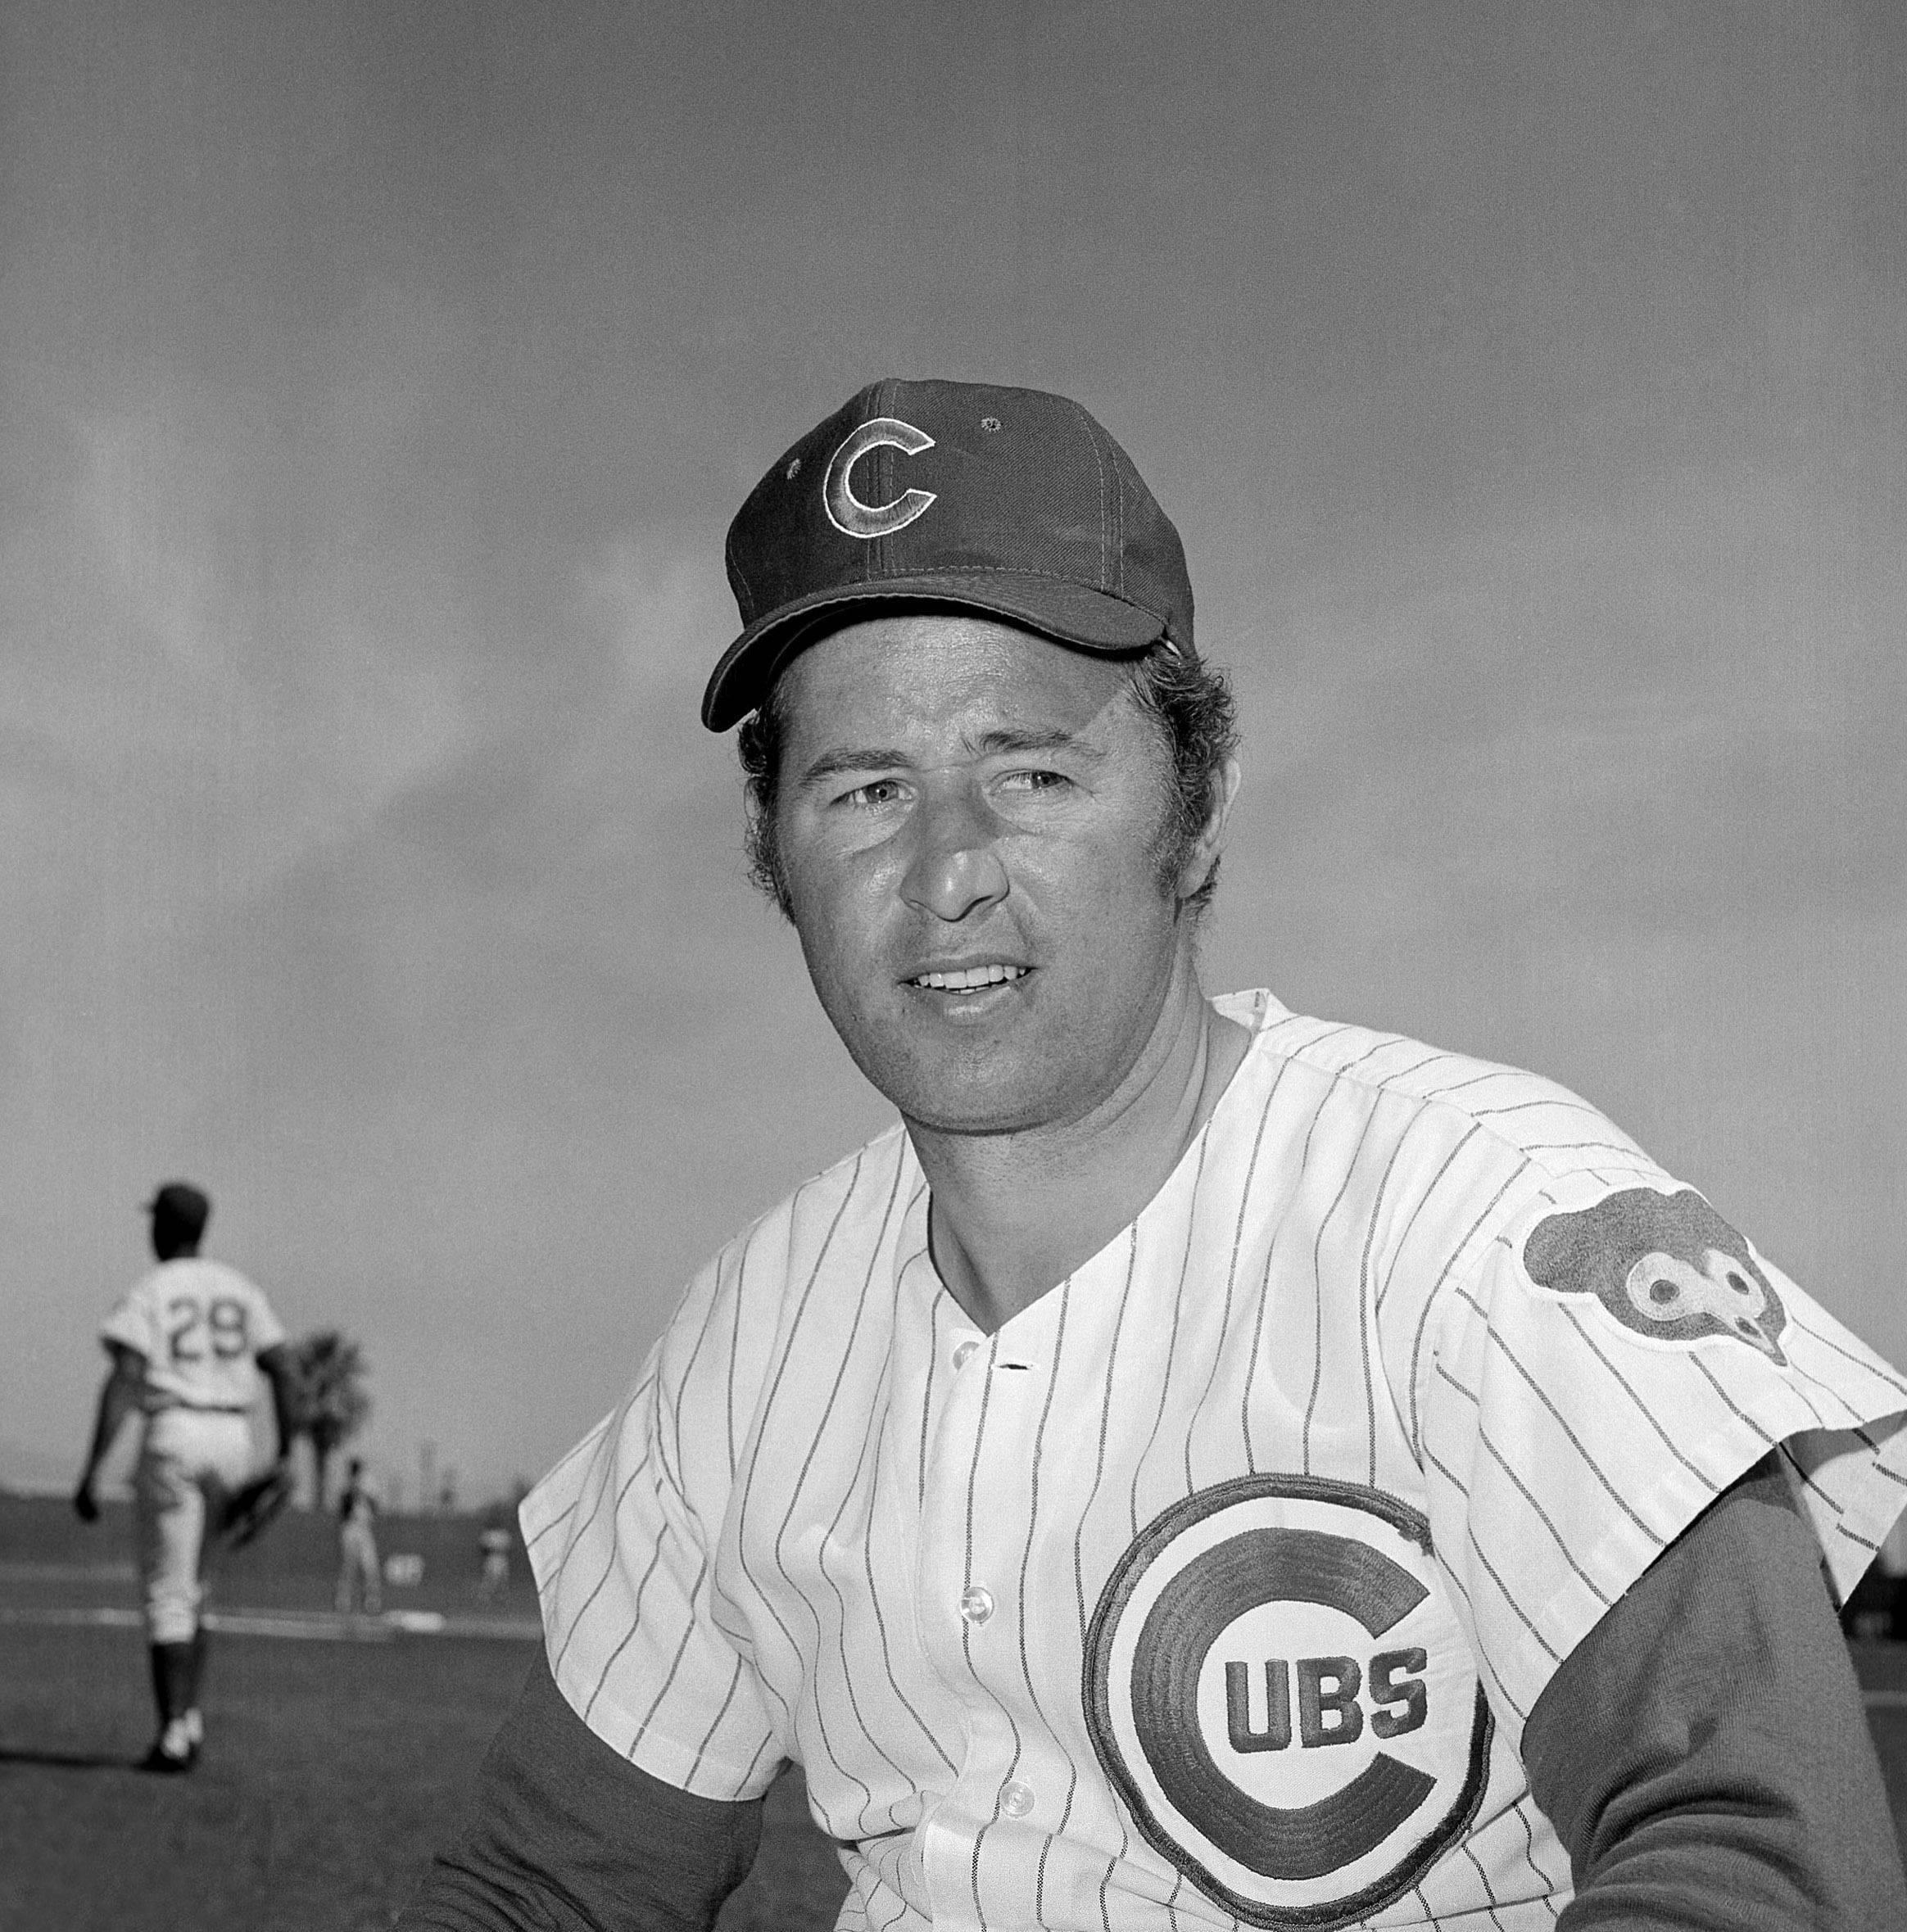 """He cared so much about this team... Ronnie was 100 percent Ron Santo on the air. Anyone who knew him personally knew that, that it was unfiltered. And there were times when he would say things you weren't supposed to say on the radio. That's what made him so loved."" -- Cubs TV announcer Len Kasper"